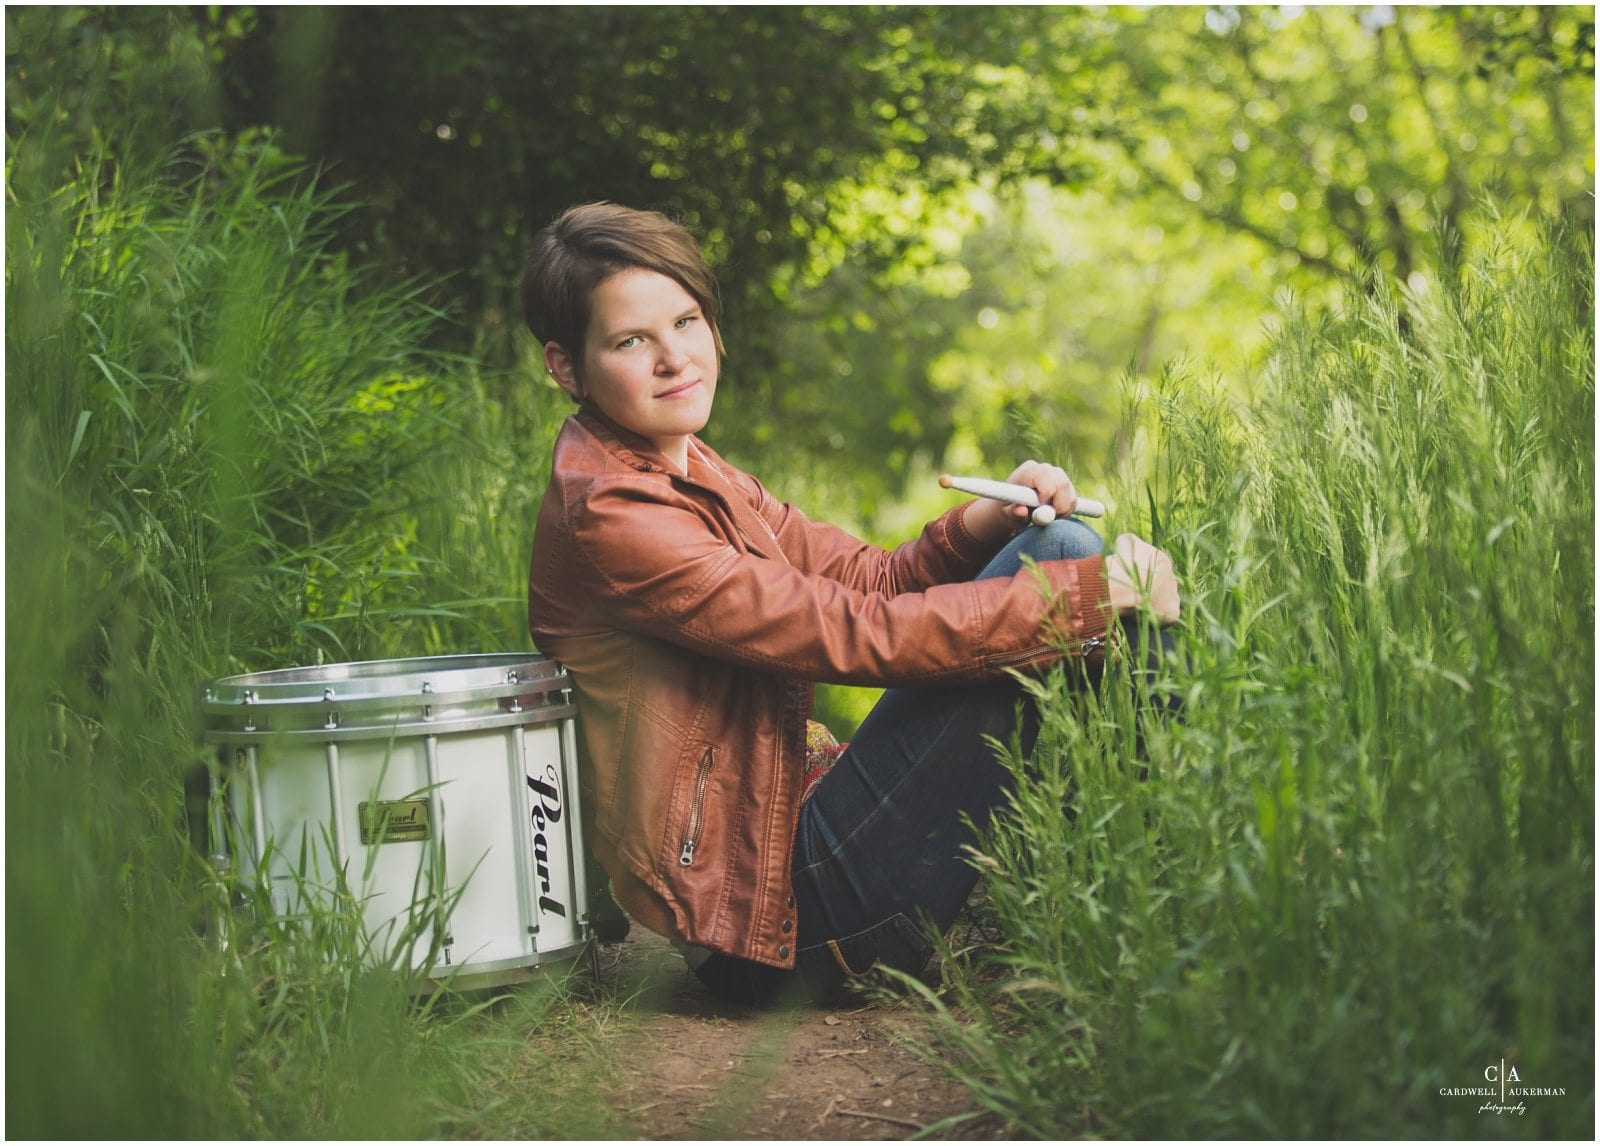 Drum-Senior-Shoot-In-Durango-Colorado